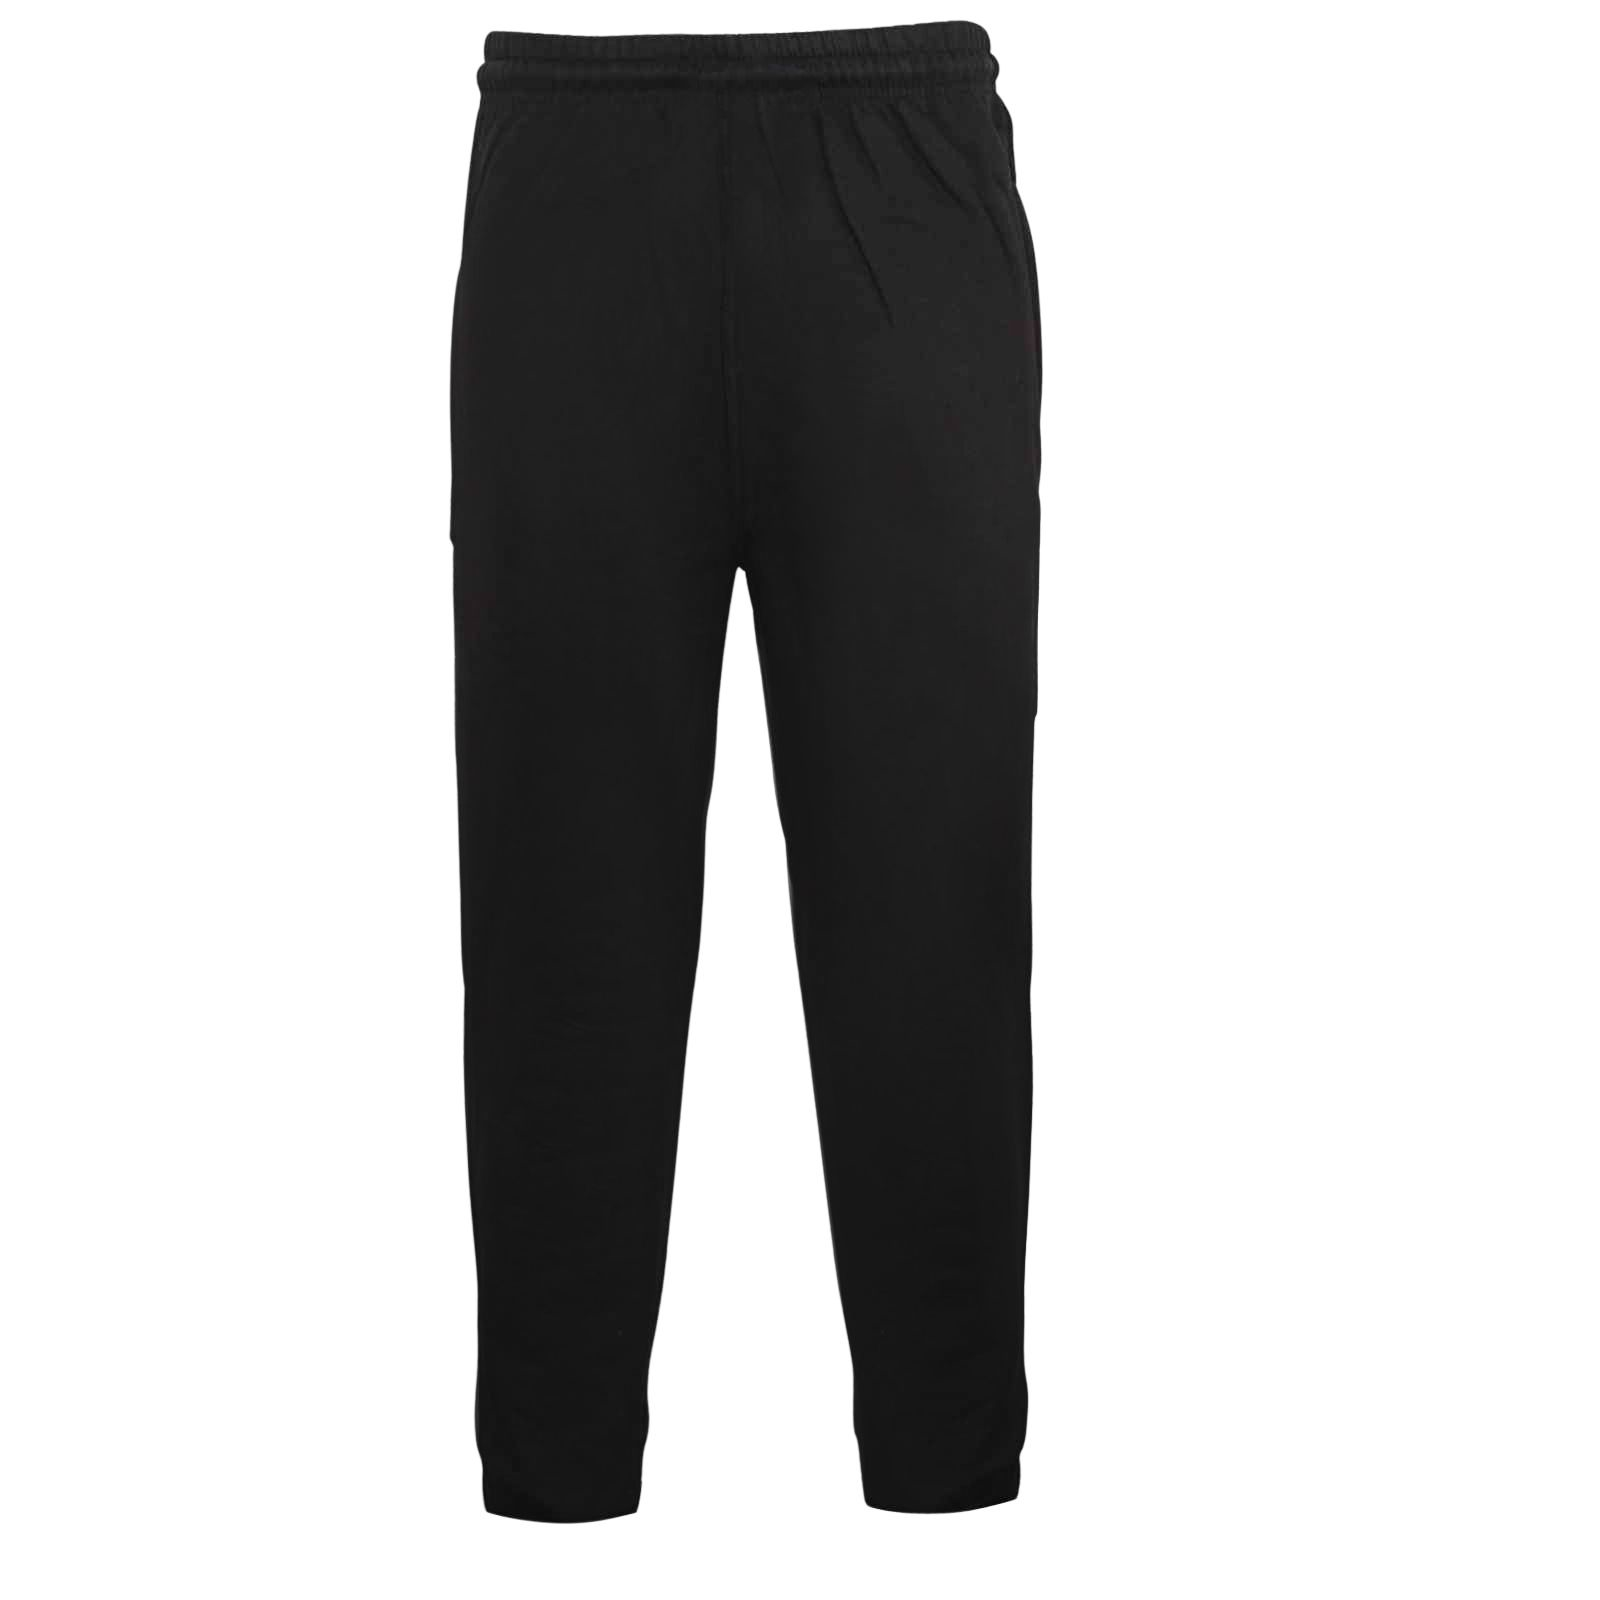 Model This Omnipresent Pant In Every Womans Wardrobe Makes Its Entry In A New Avatar The Sweat Pant Has A Tapered Elastic Bottom And String On The Waistline The Slim Fit Of This Sweat Pant Makes It Very Womanly And It Looks Very Classy